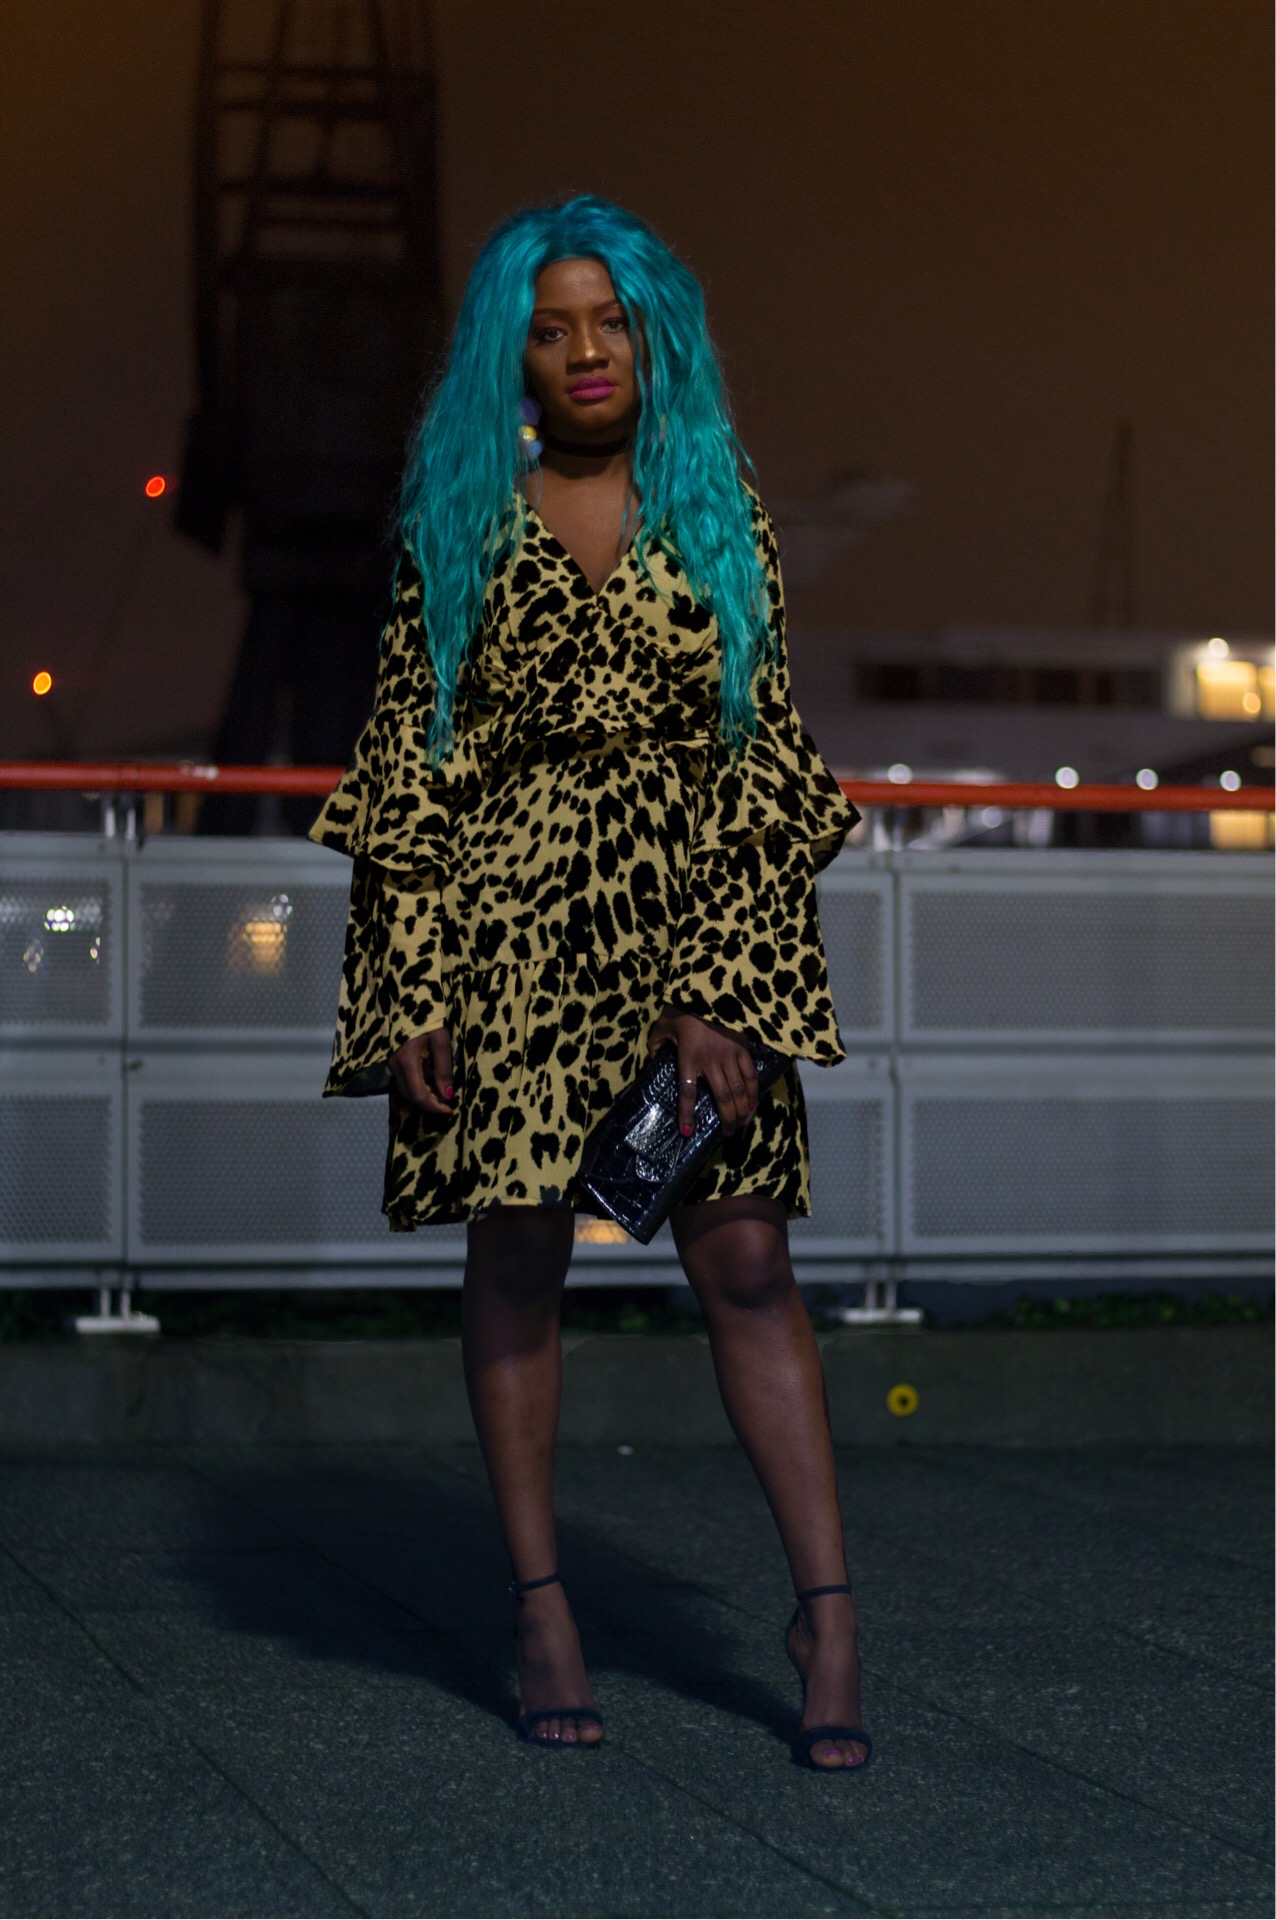 Mariama Rebecca in leopard print dress from nastygal